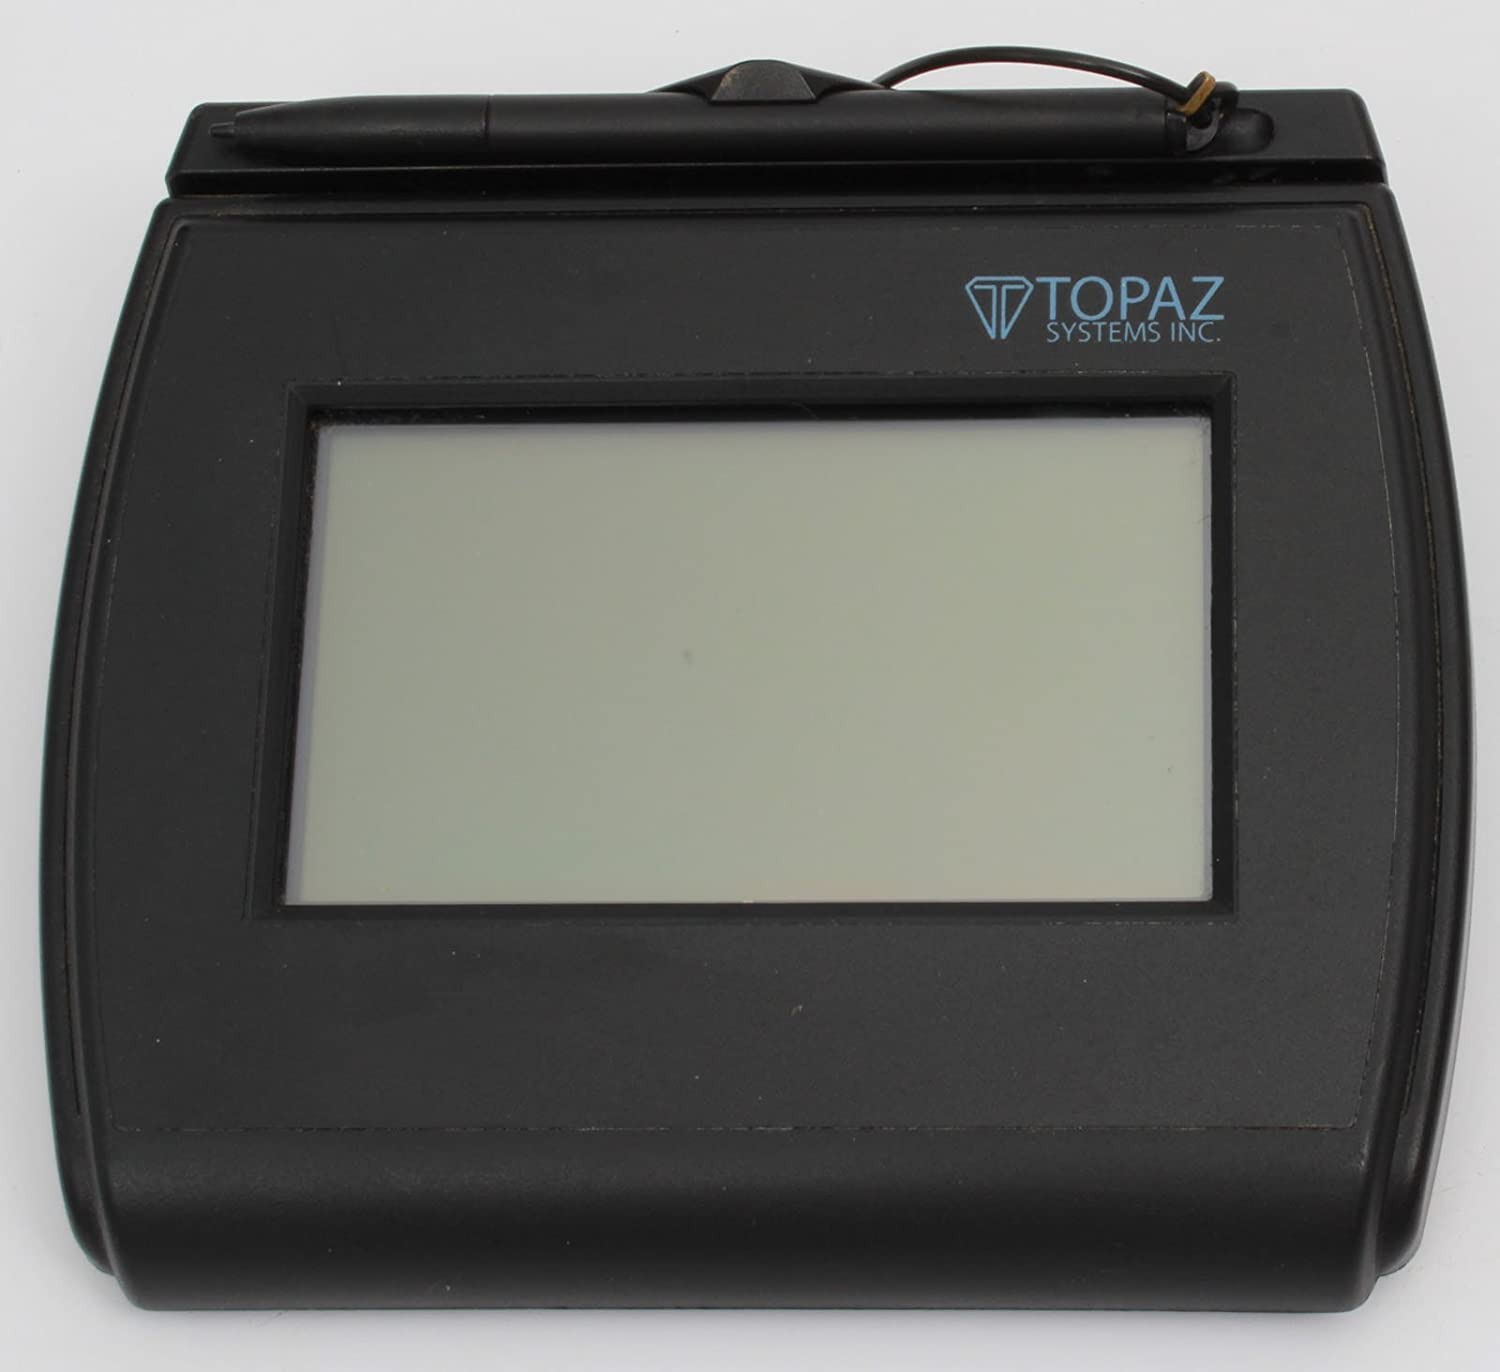 Topaz T LBK750 BHSB R Backlit 4x3 LCD Signature Capture Pad Dual Serial USB